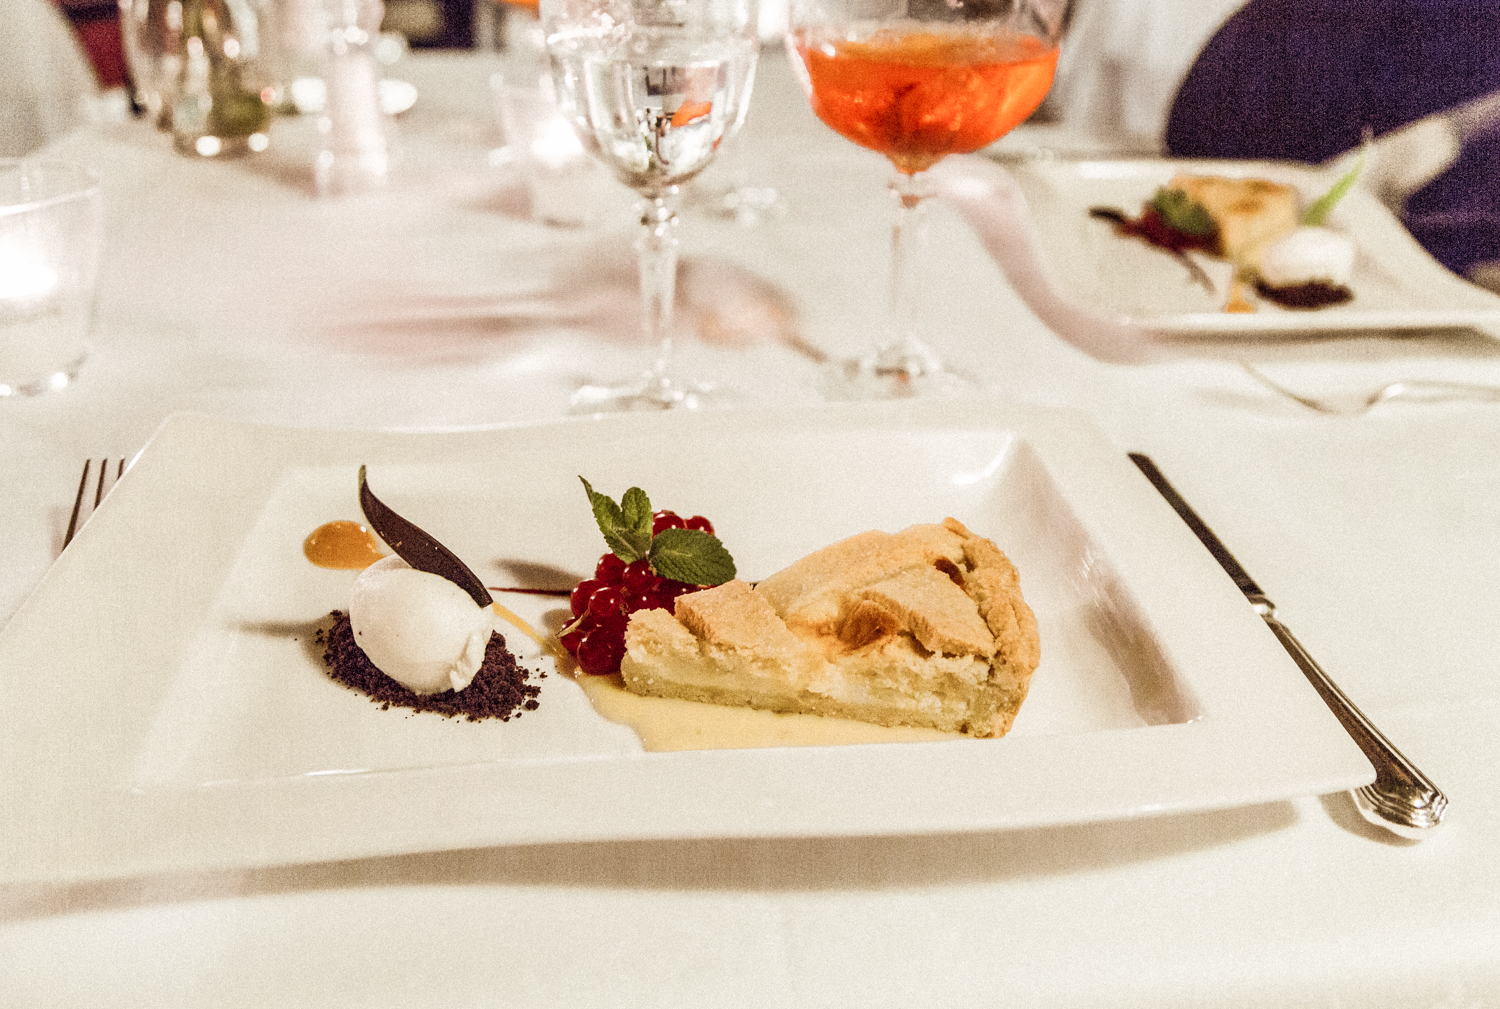 Fine Dining Cuisine and Food at Masseria Torre Coccaro in Puglia, Italy (16 of 17).jpg